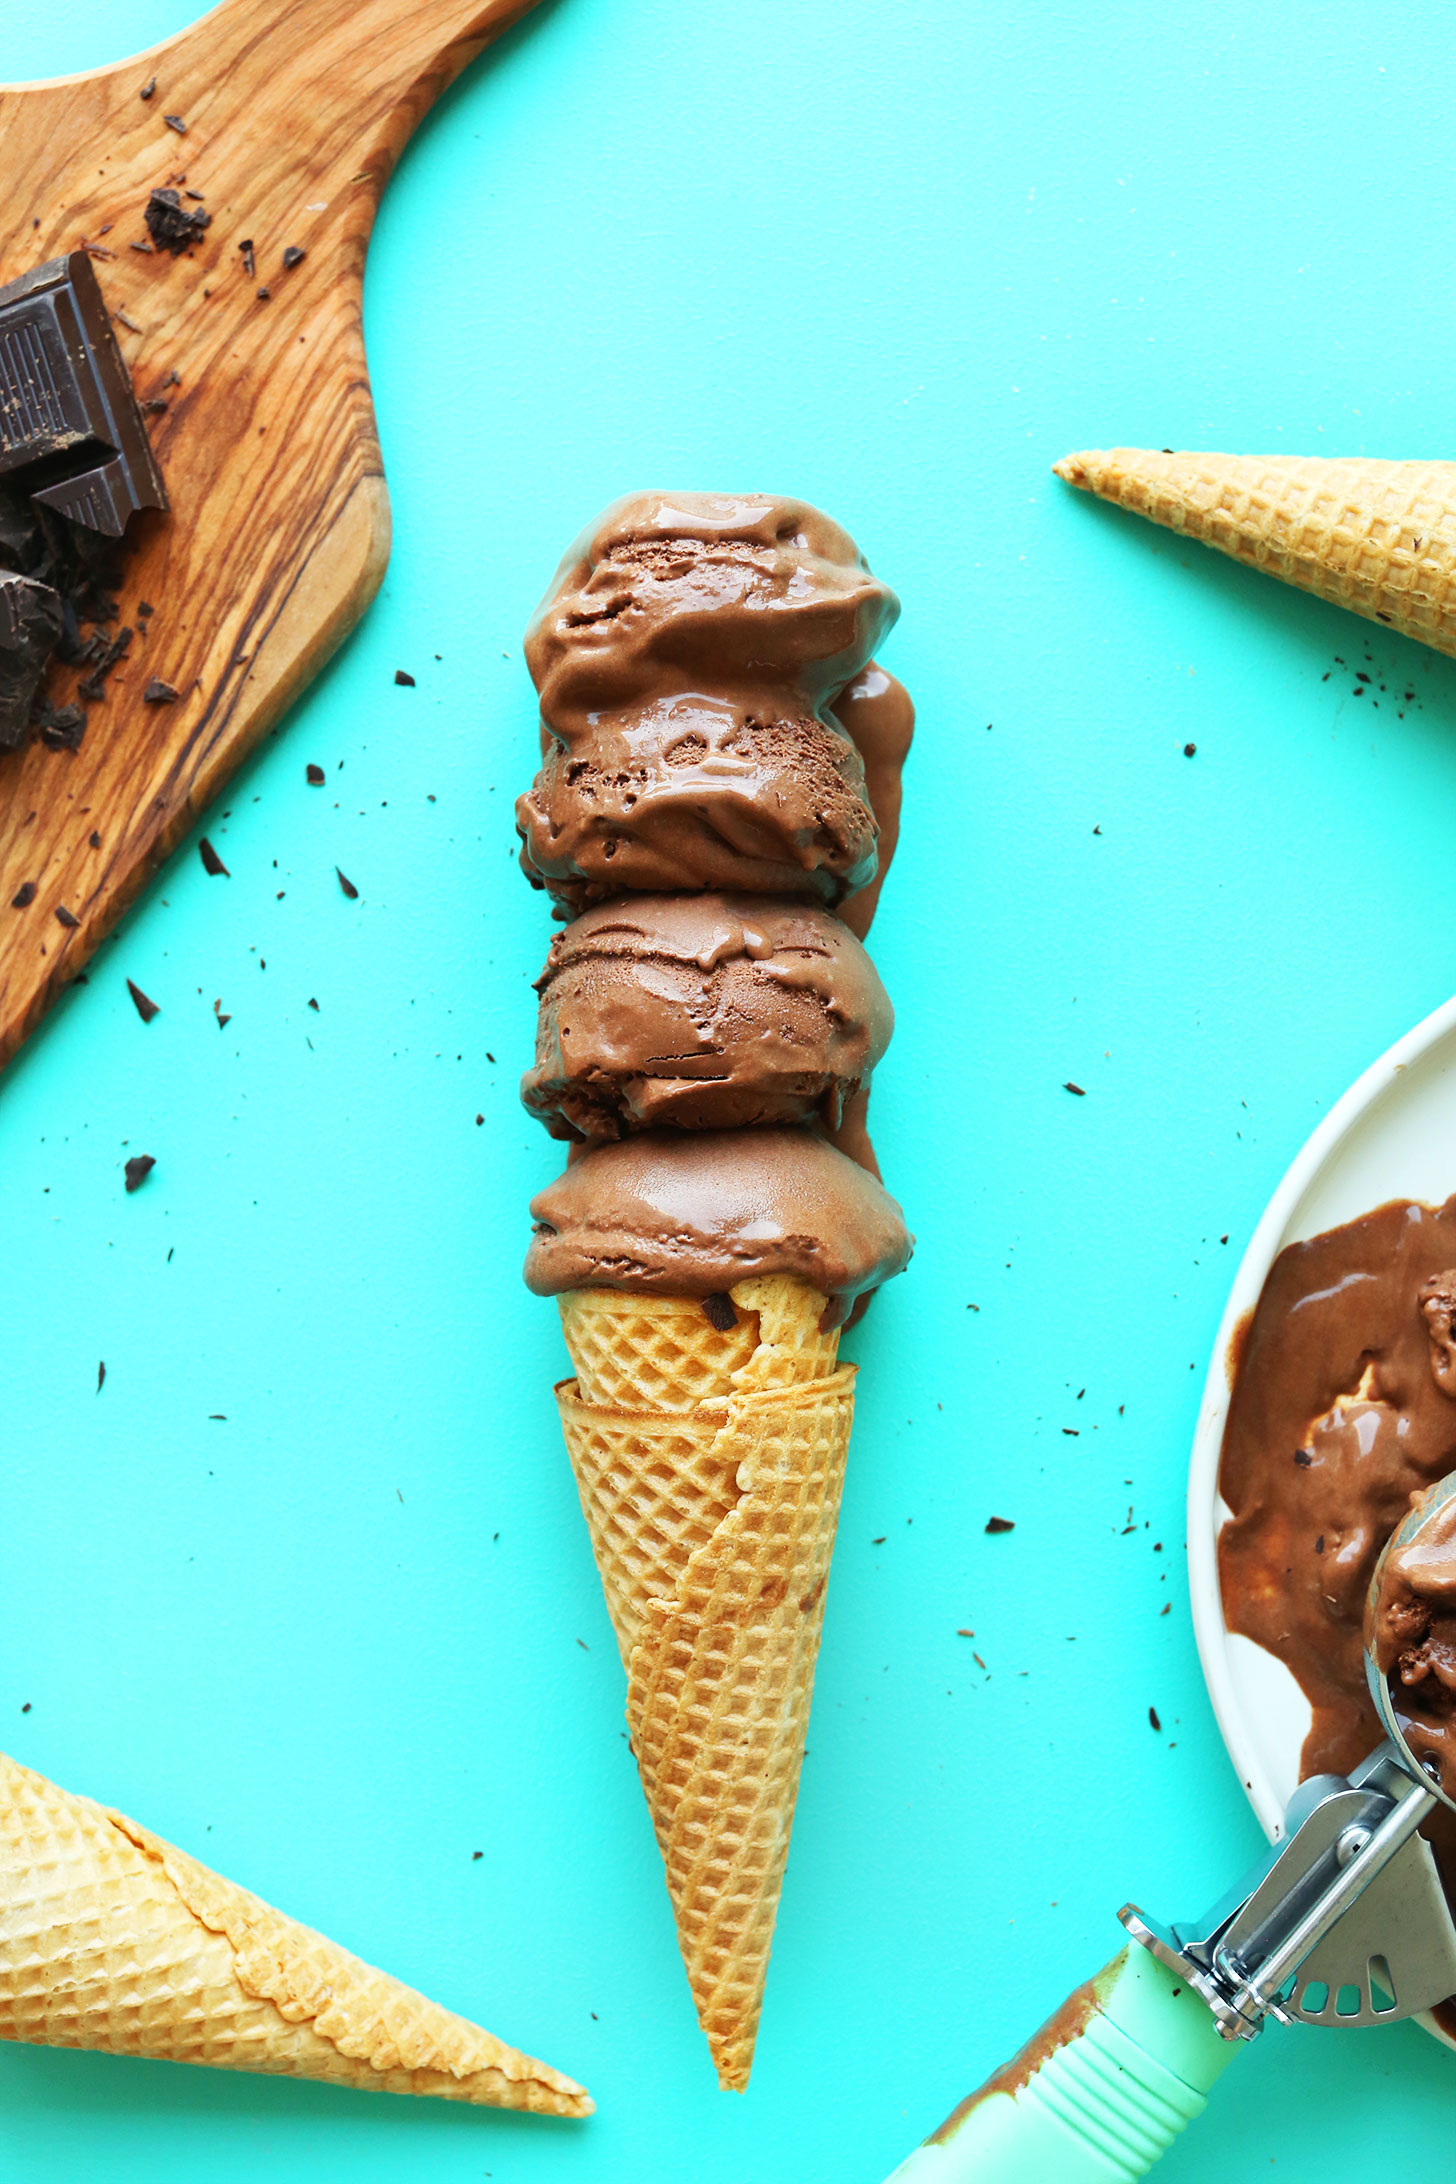 Scoops of our homemade vegan chocolate gelato for a delicious dessert